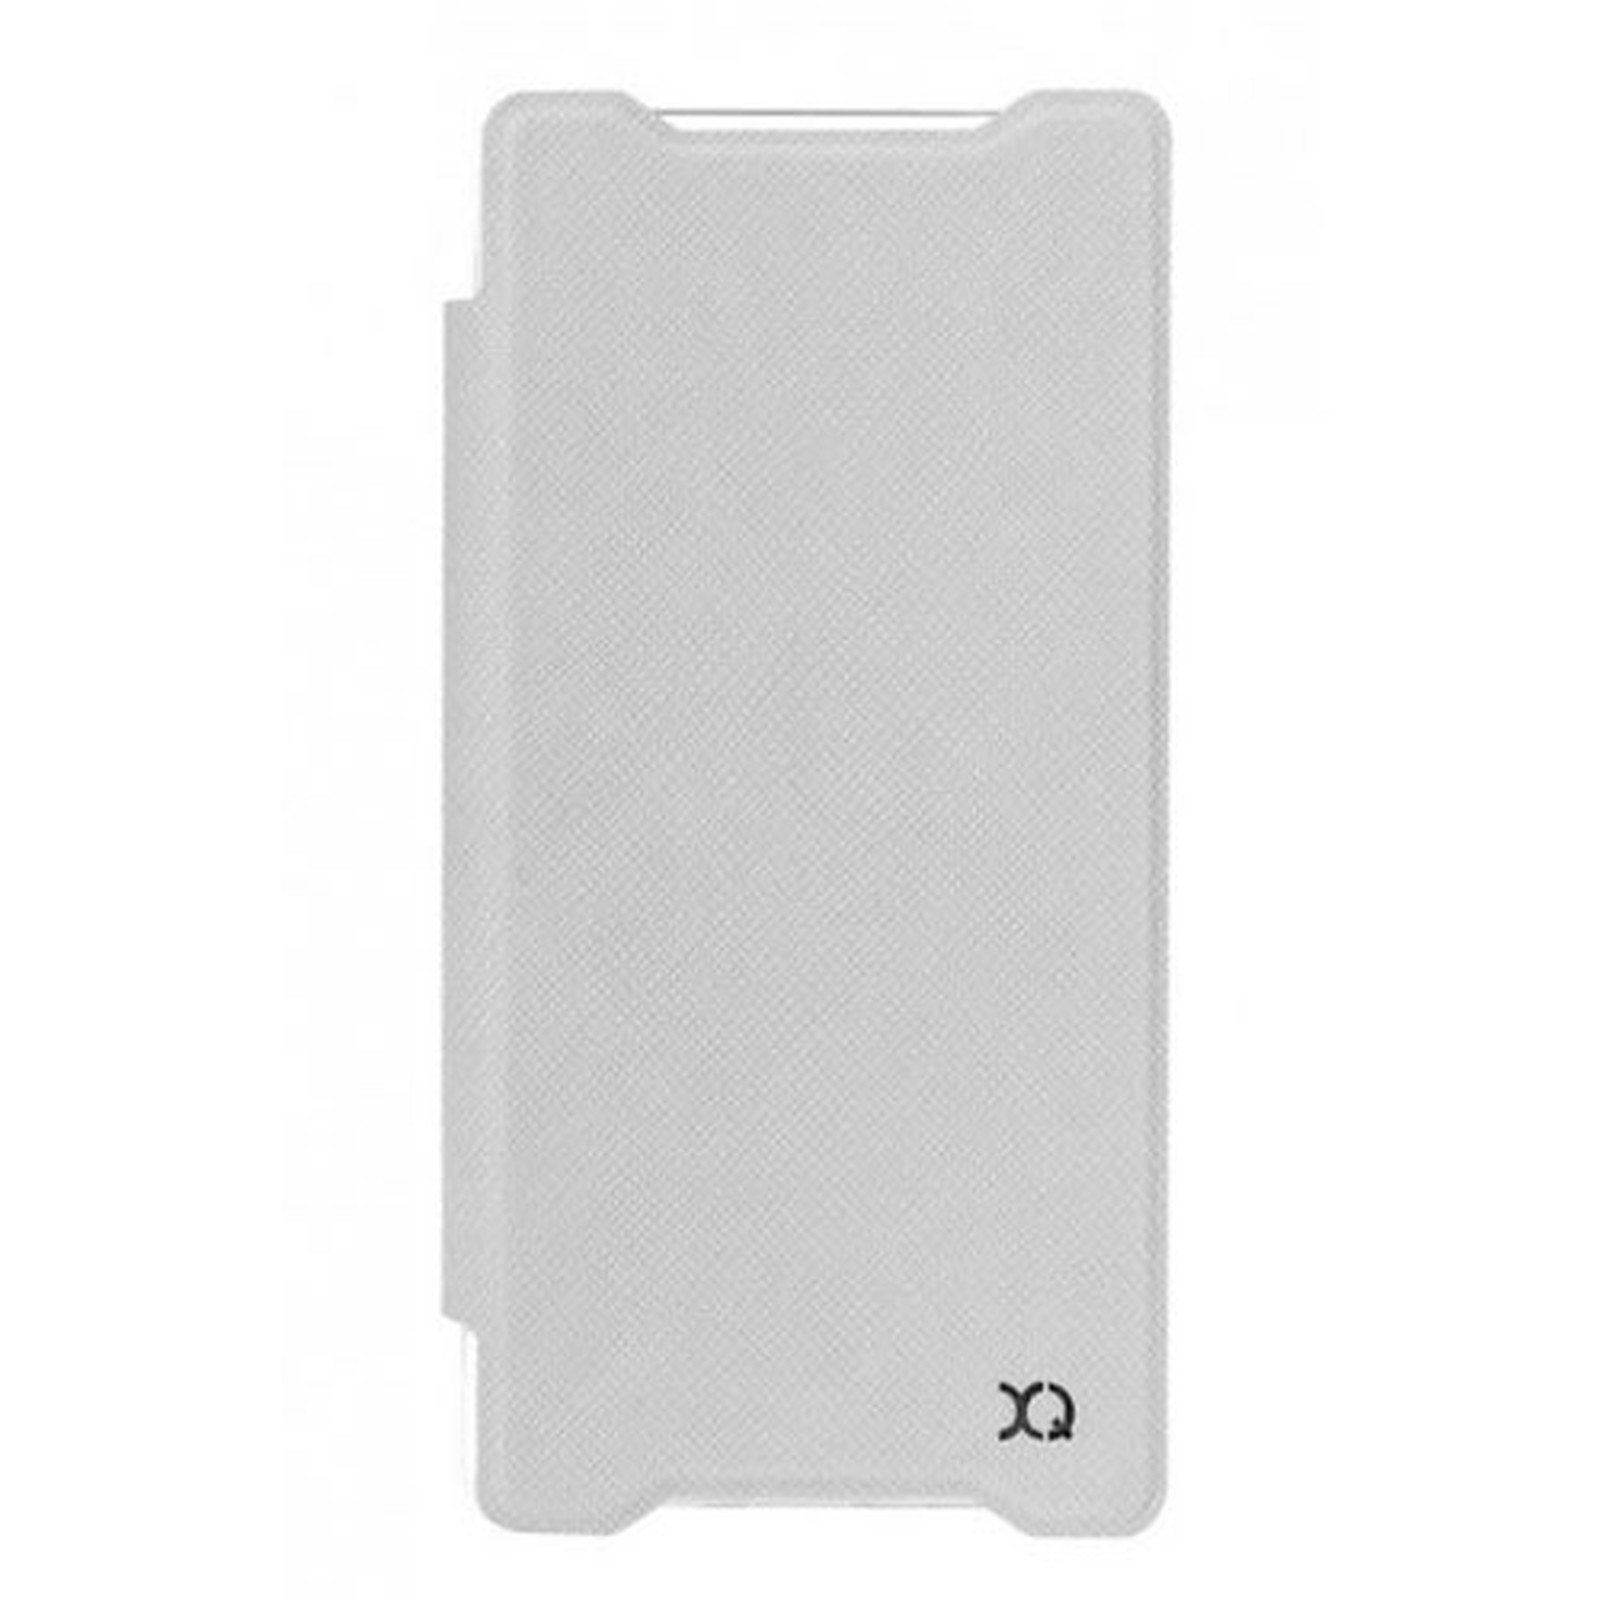 xqisit Etui Flap Cover Adour Blanc Sony Xperia Z5 Compact